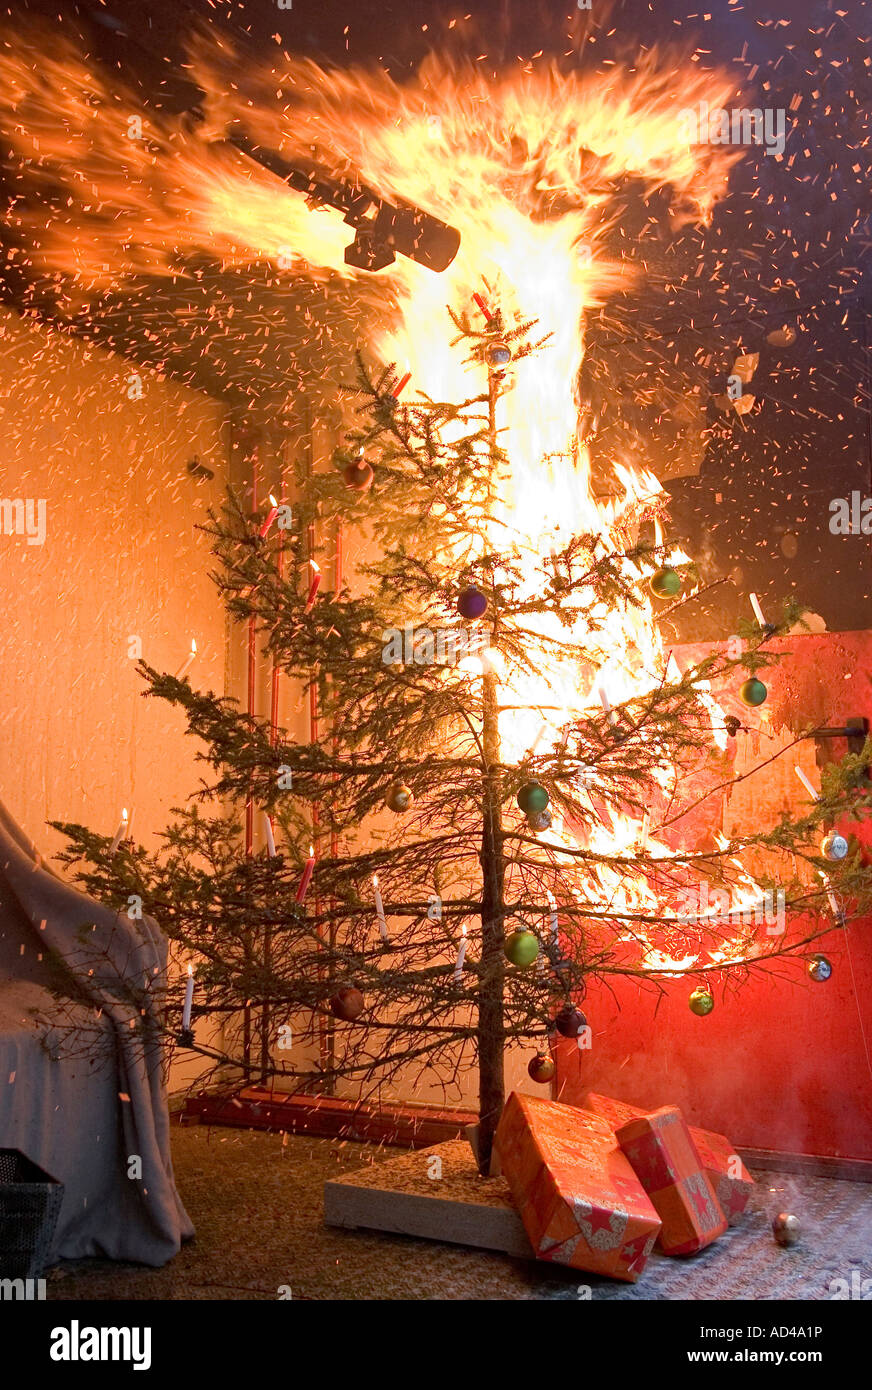 Burning Christmas Tree.Burning Christmas Tree During A Demonstration Of A Fire